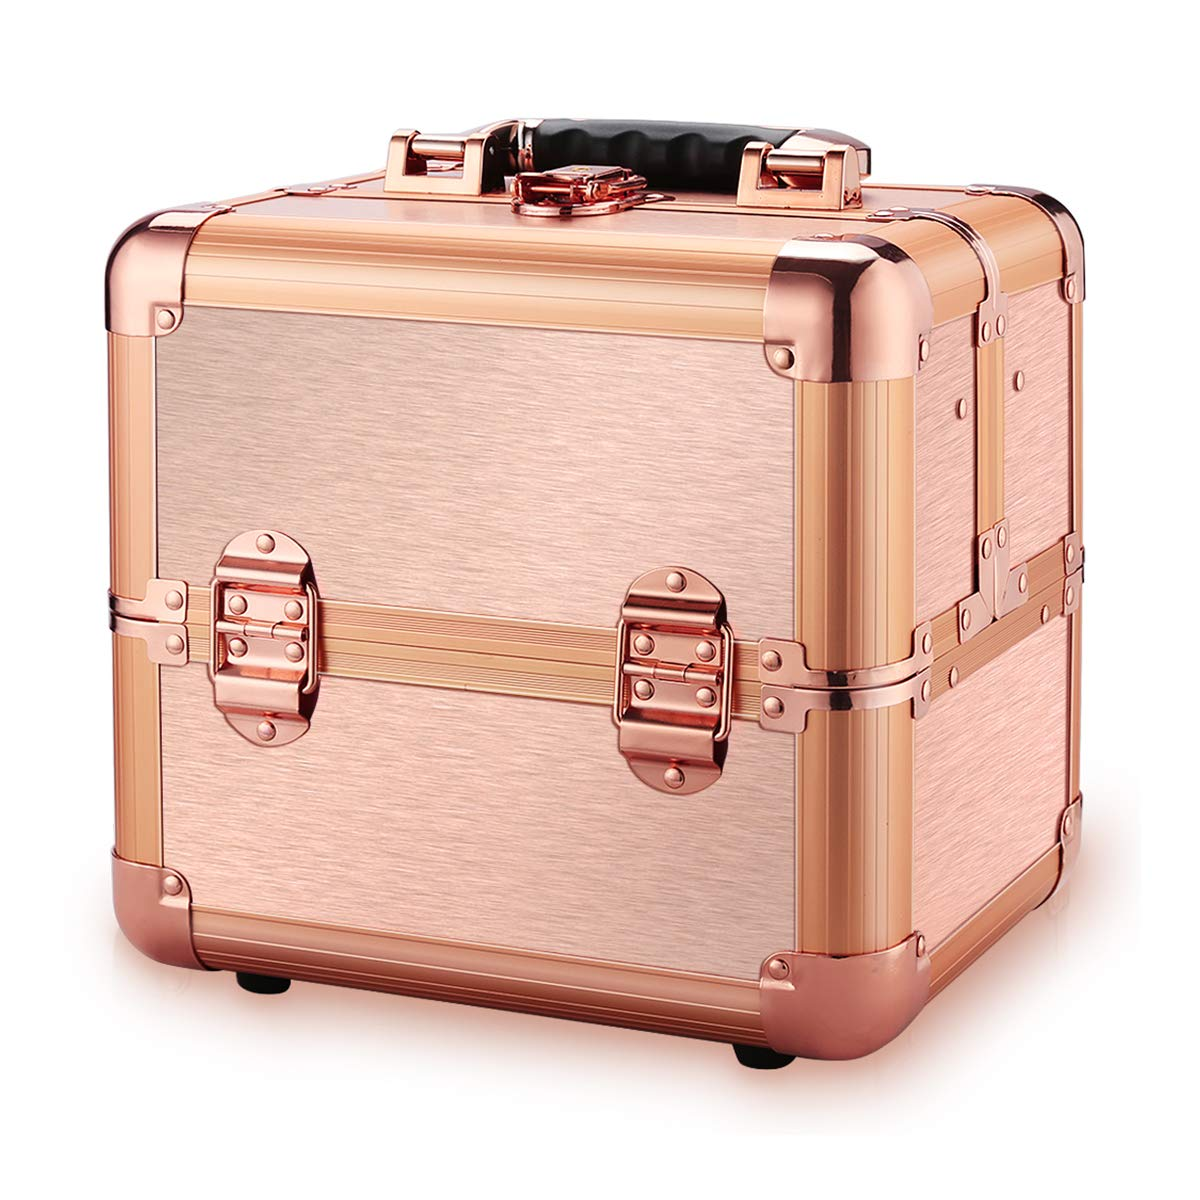 Ovonni Professional Portable Small Makeup Train Case, Artist Lockable Aluminum Cosmetic Organizer Storage Box with Compartments Rosegold 1